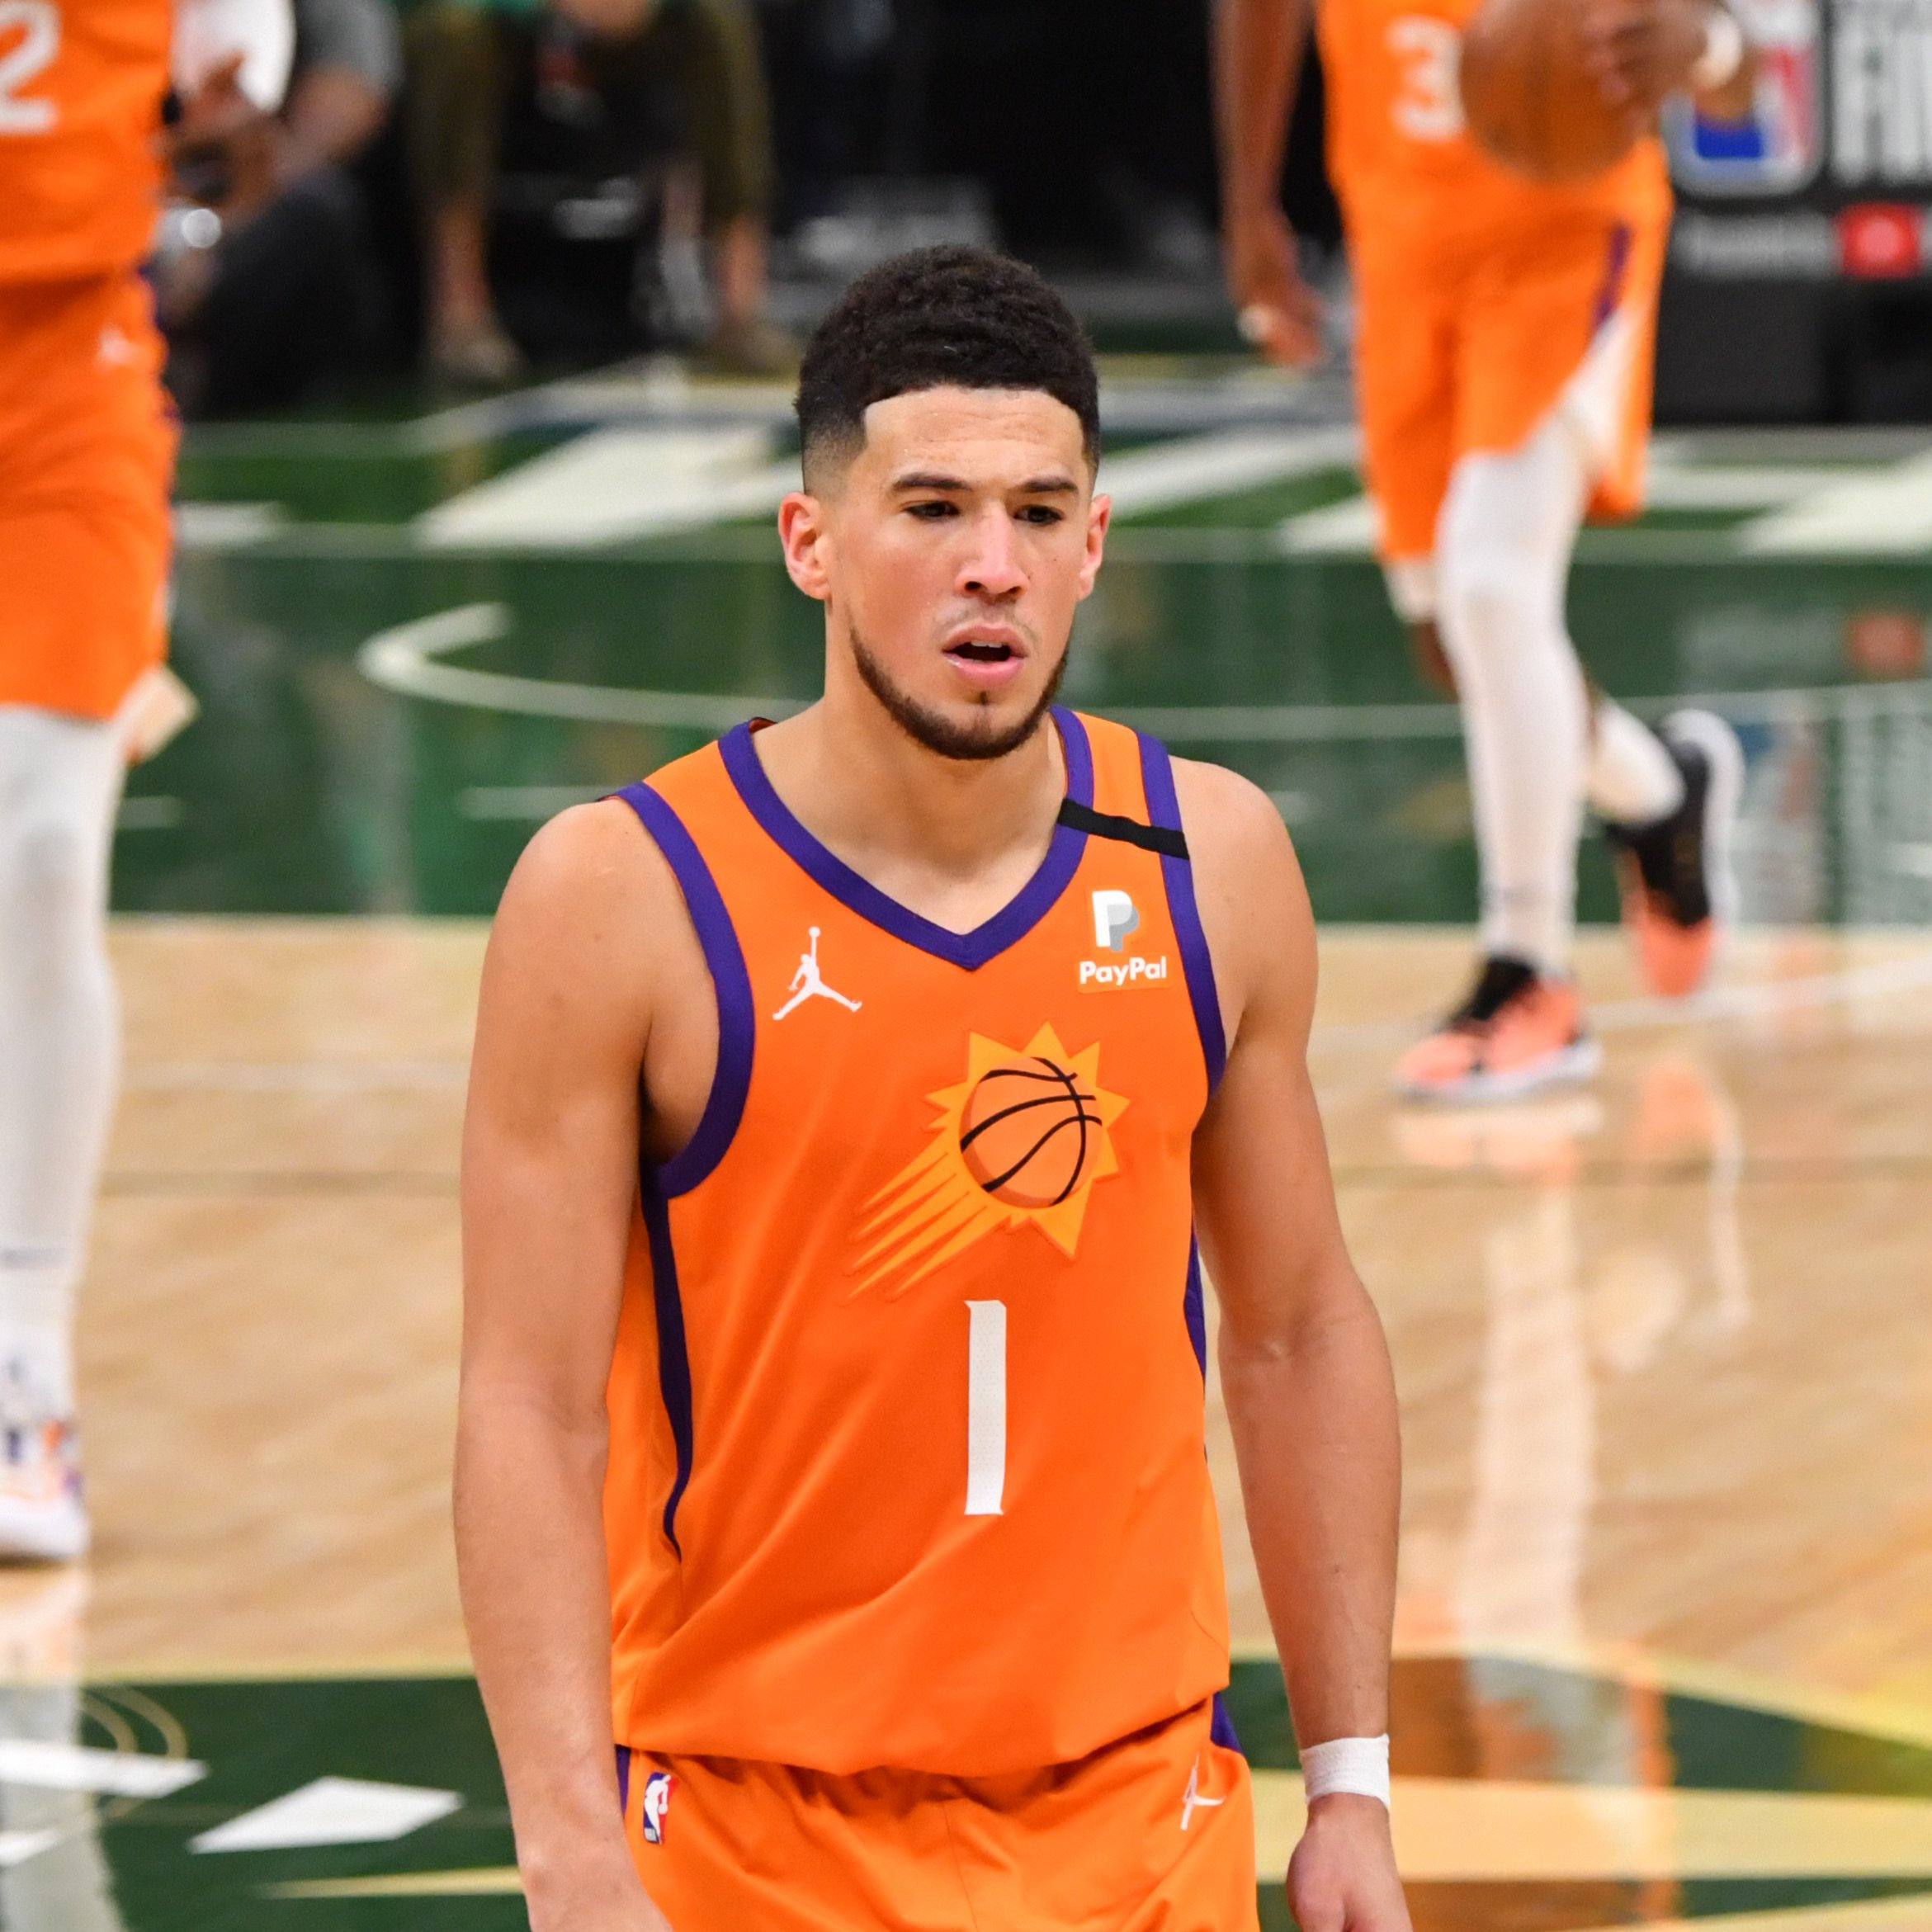 Booker starts strong in the first half